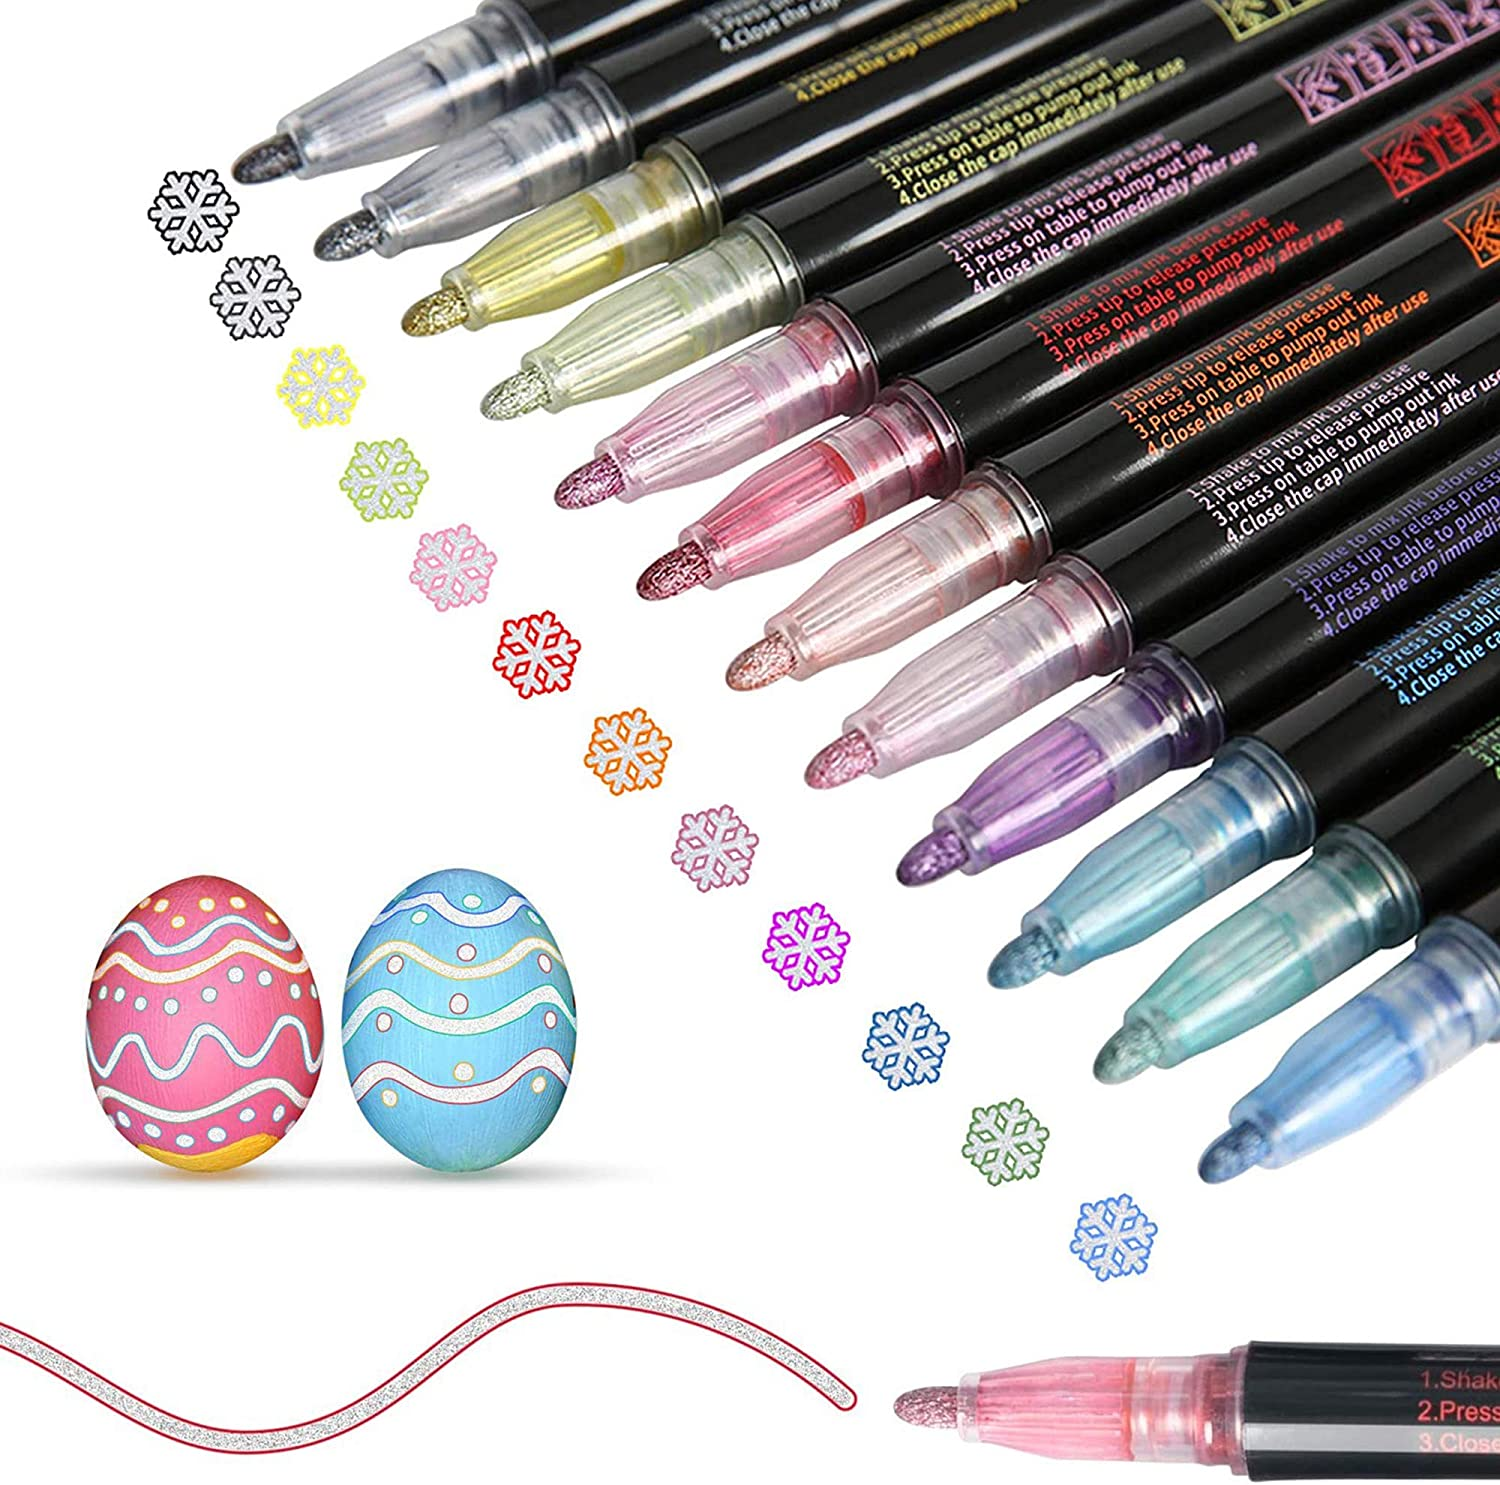 Greeting Cards Painting 12 Colors Double Line Outline Metallic Markers for Drawing Marker Pen for Highlight DIY Art Crafts Craft Projects Doodle Dazzle Markers Posters